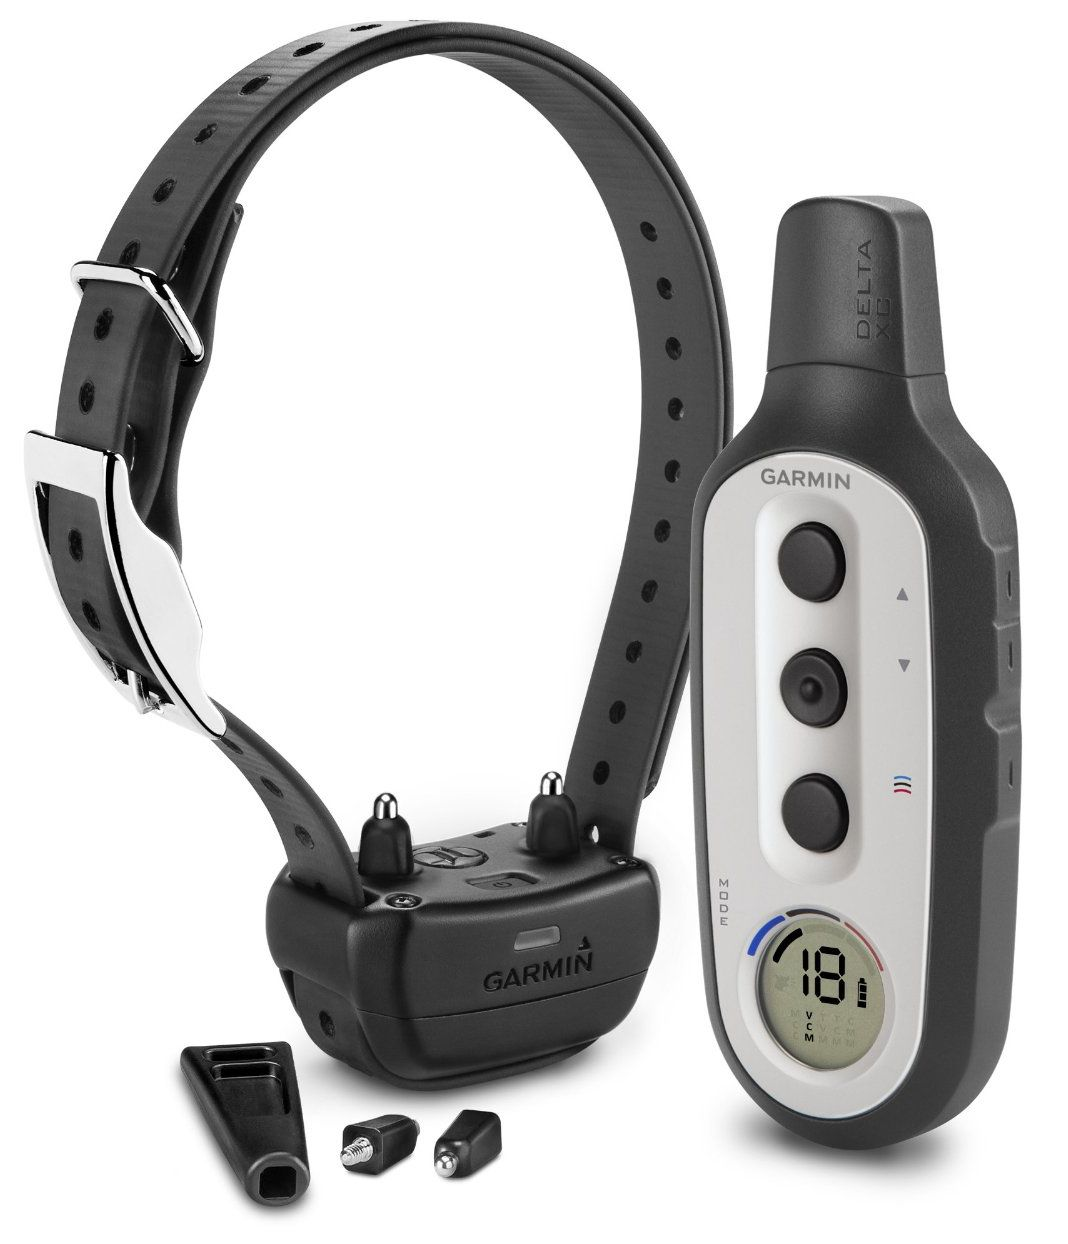 Top 10 Best Remote Dog Training Collars Reviewed In 2016